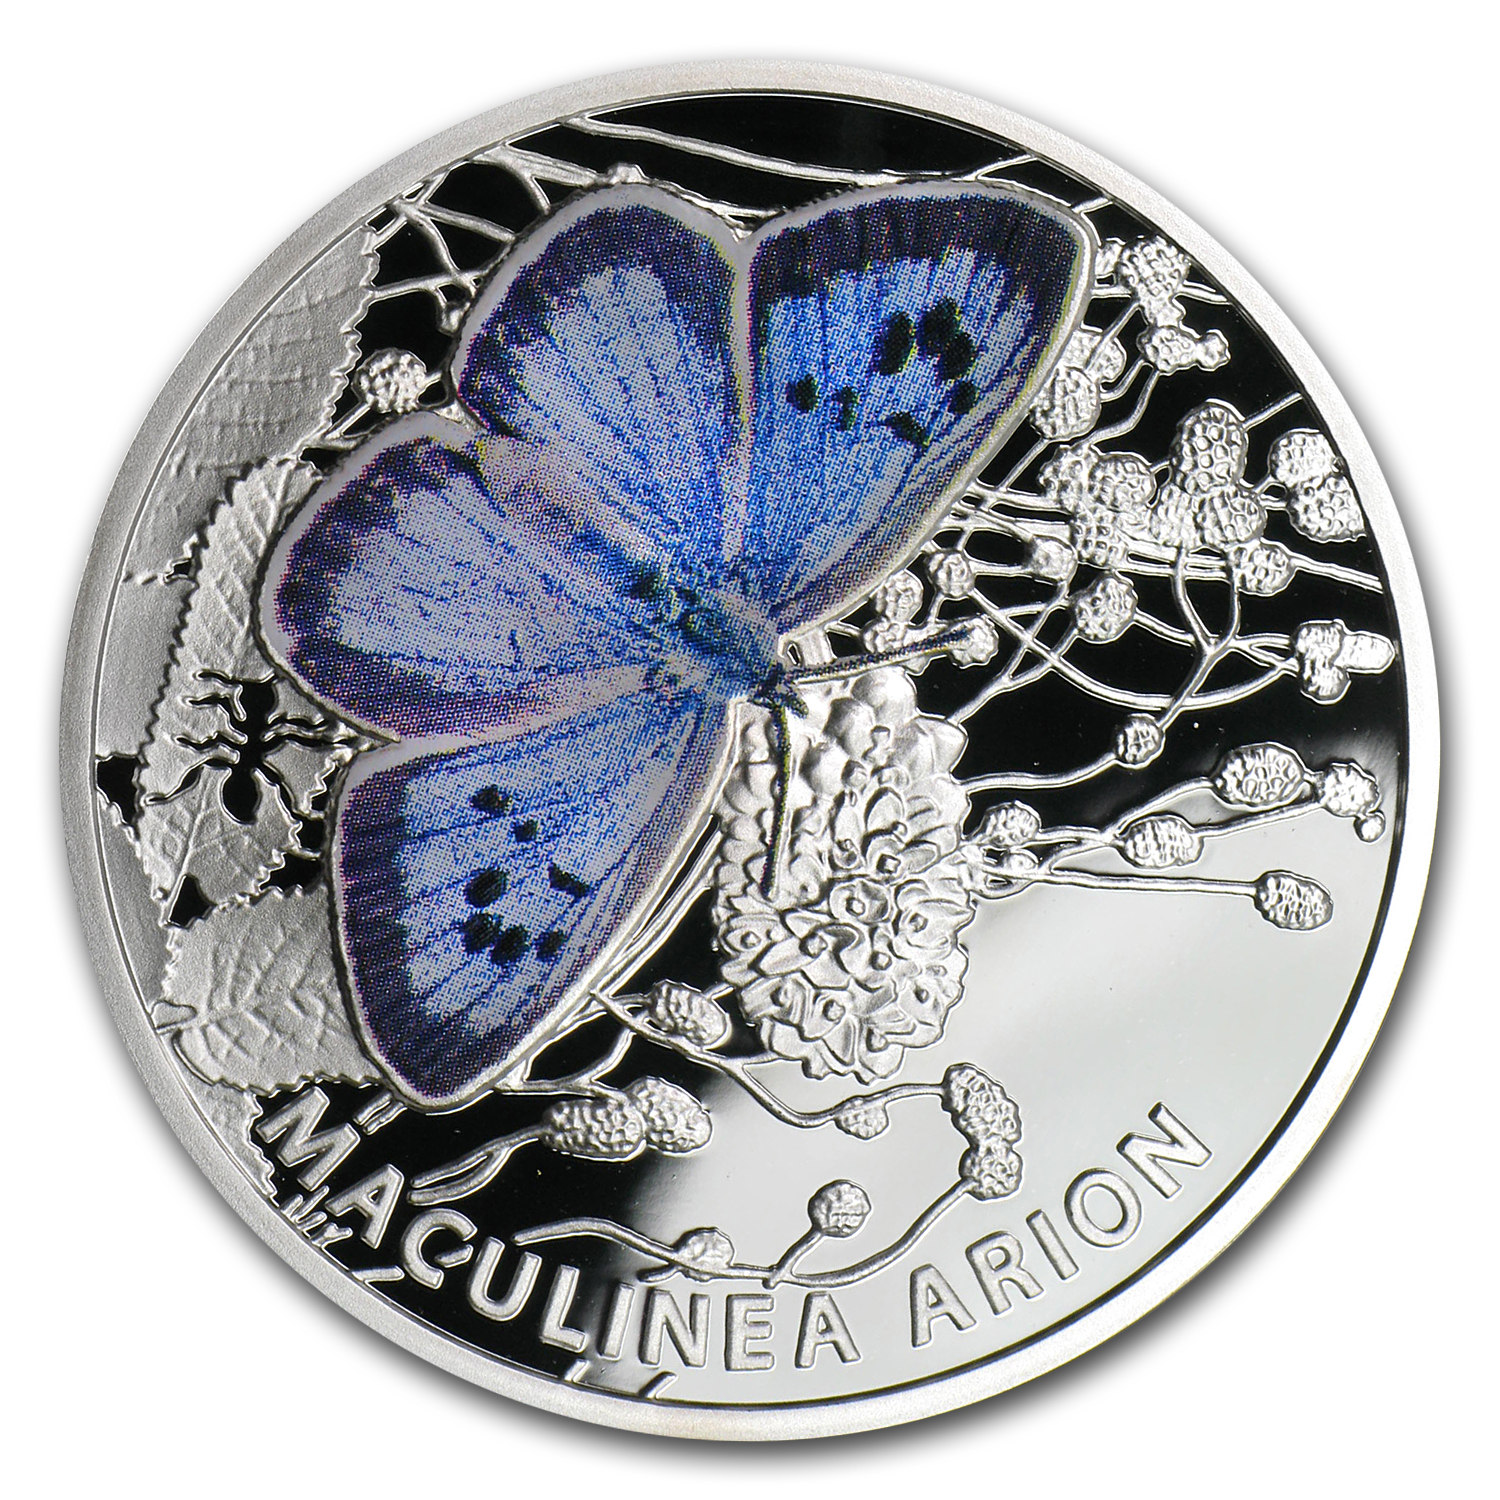 Niue 2011 Proof Silver $1 Butterflies - Large Blue